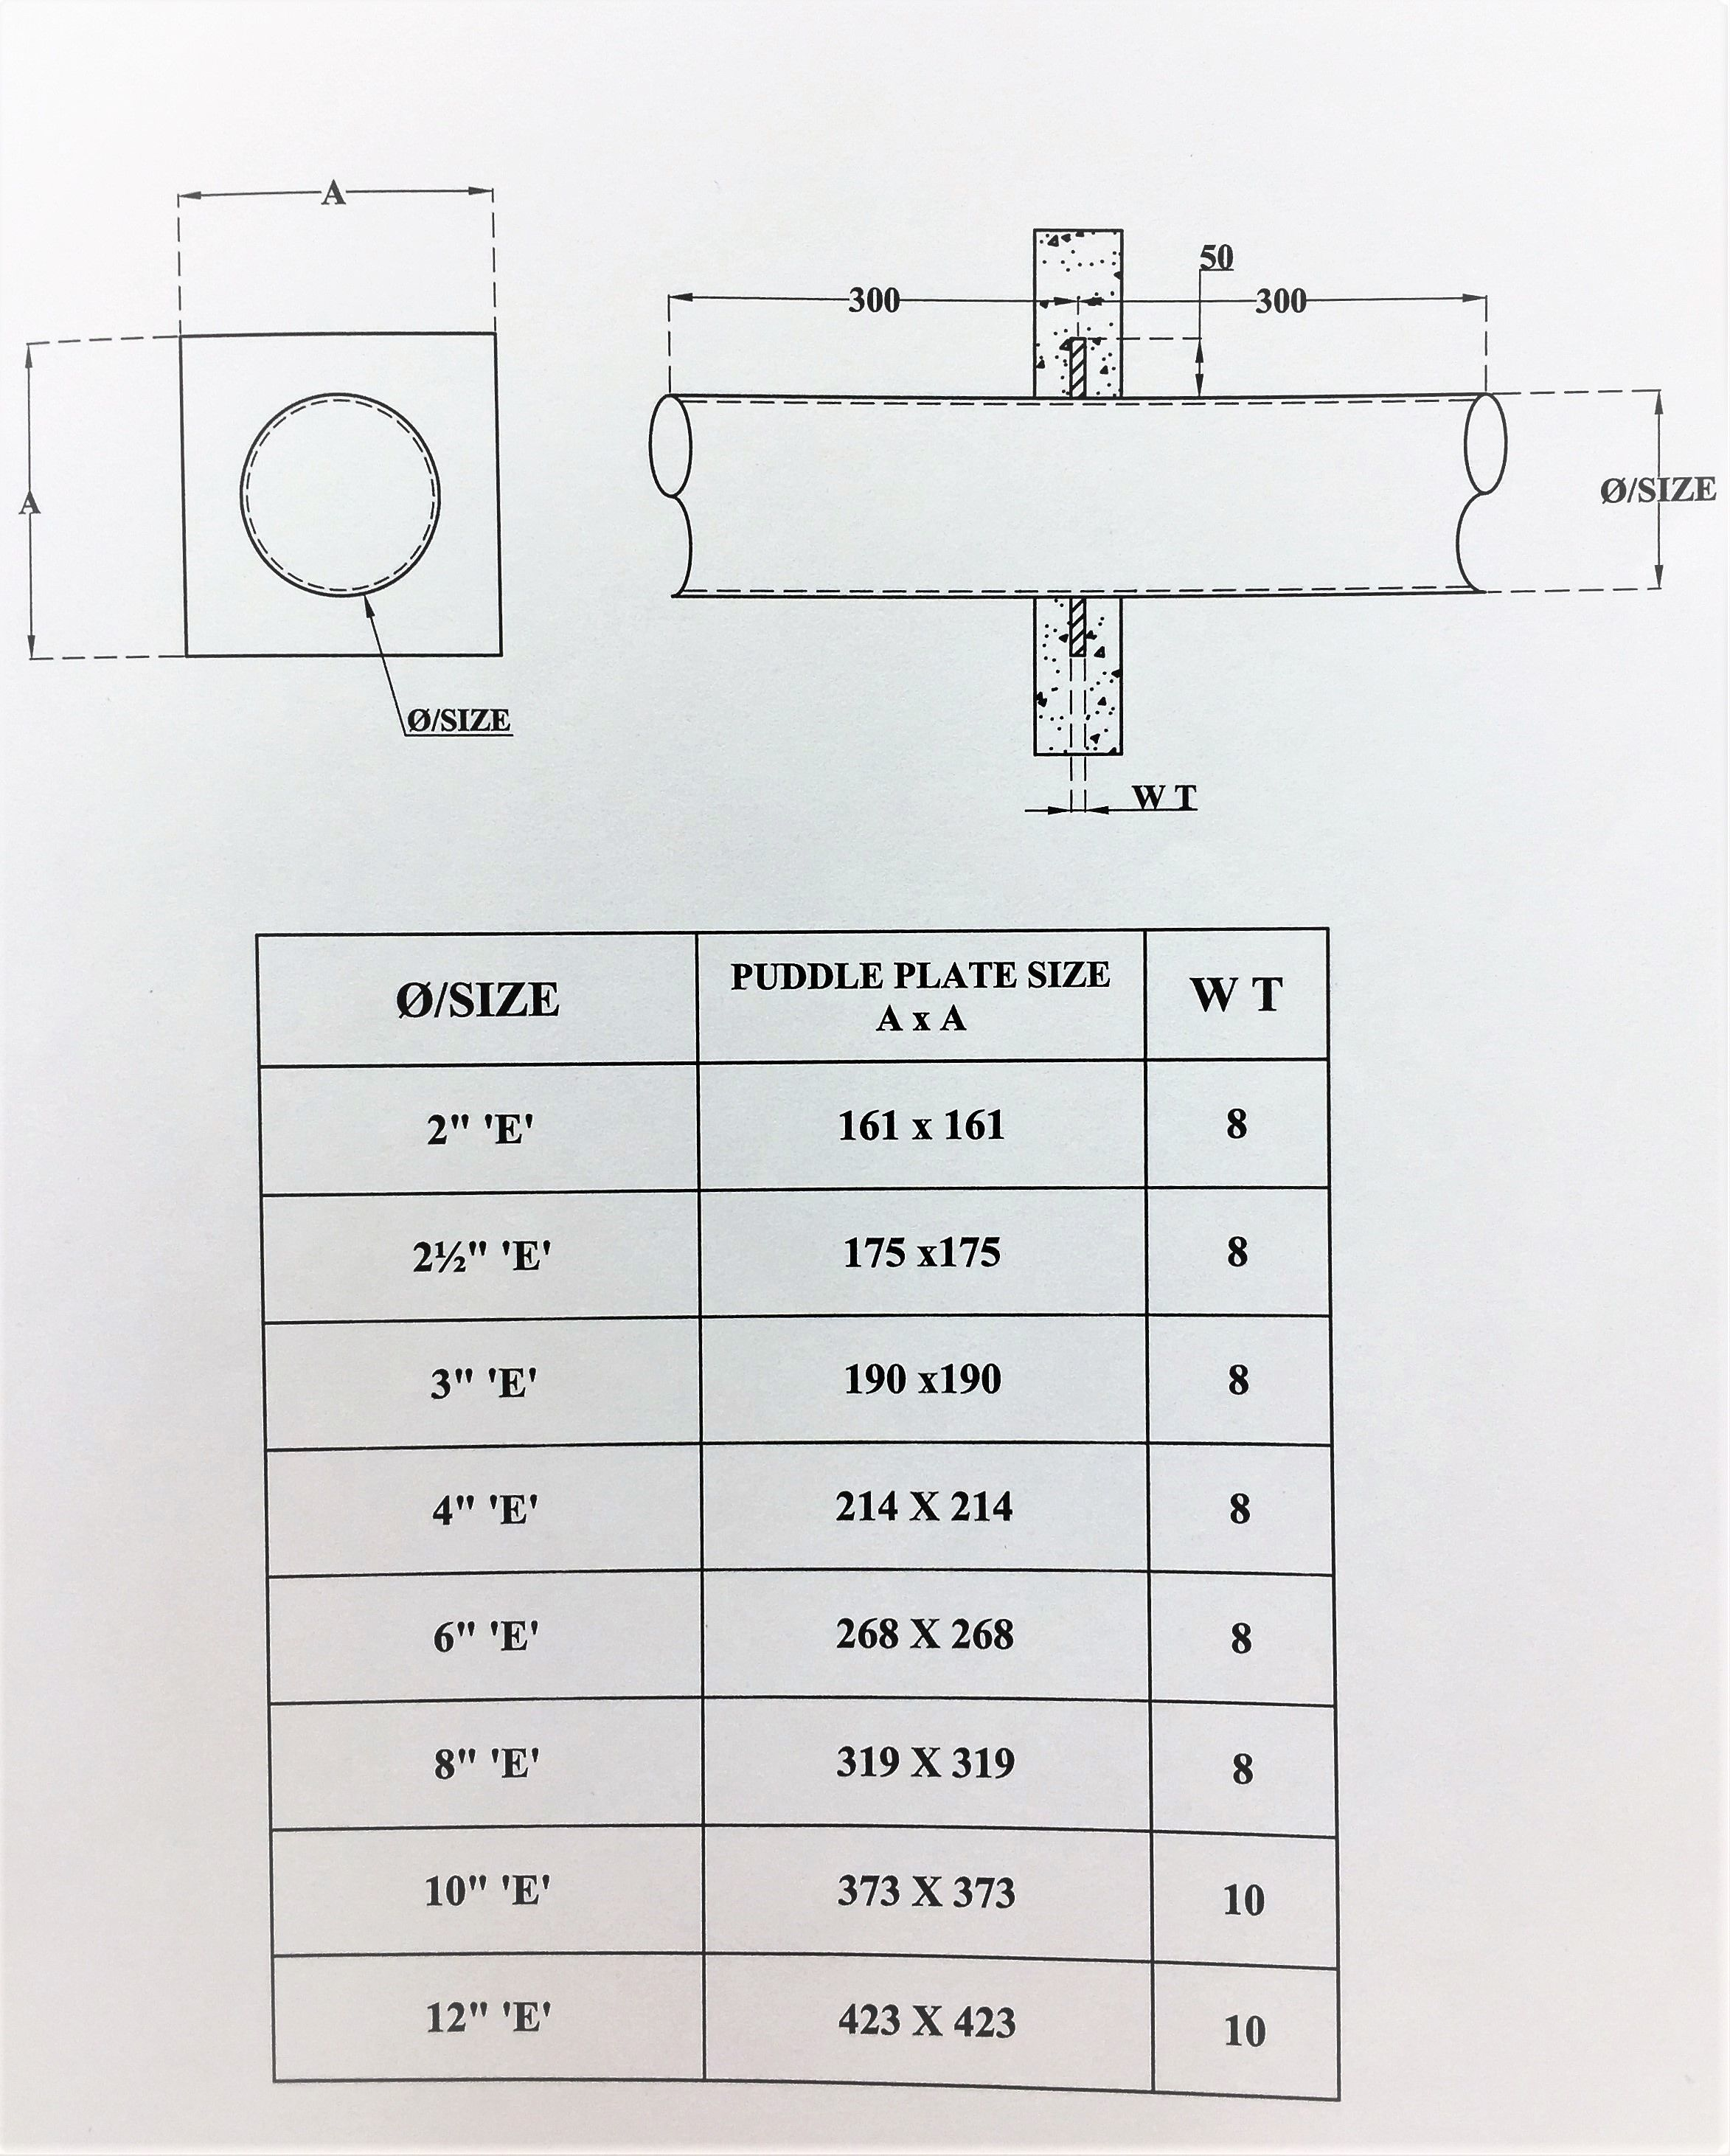 hight resolution of sizing the flange of the puddle flange according pipe size